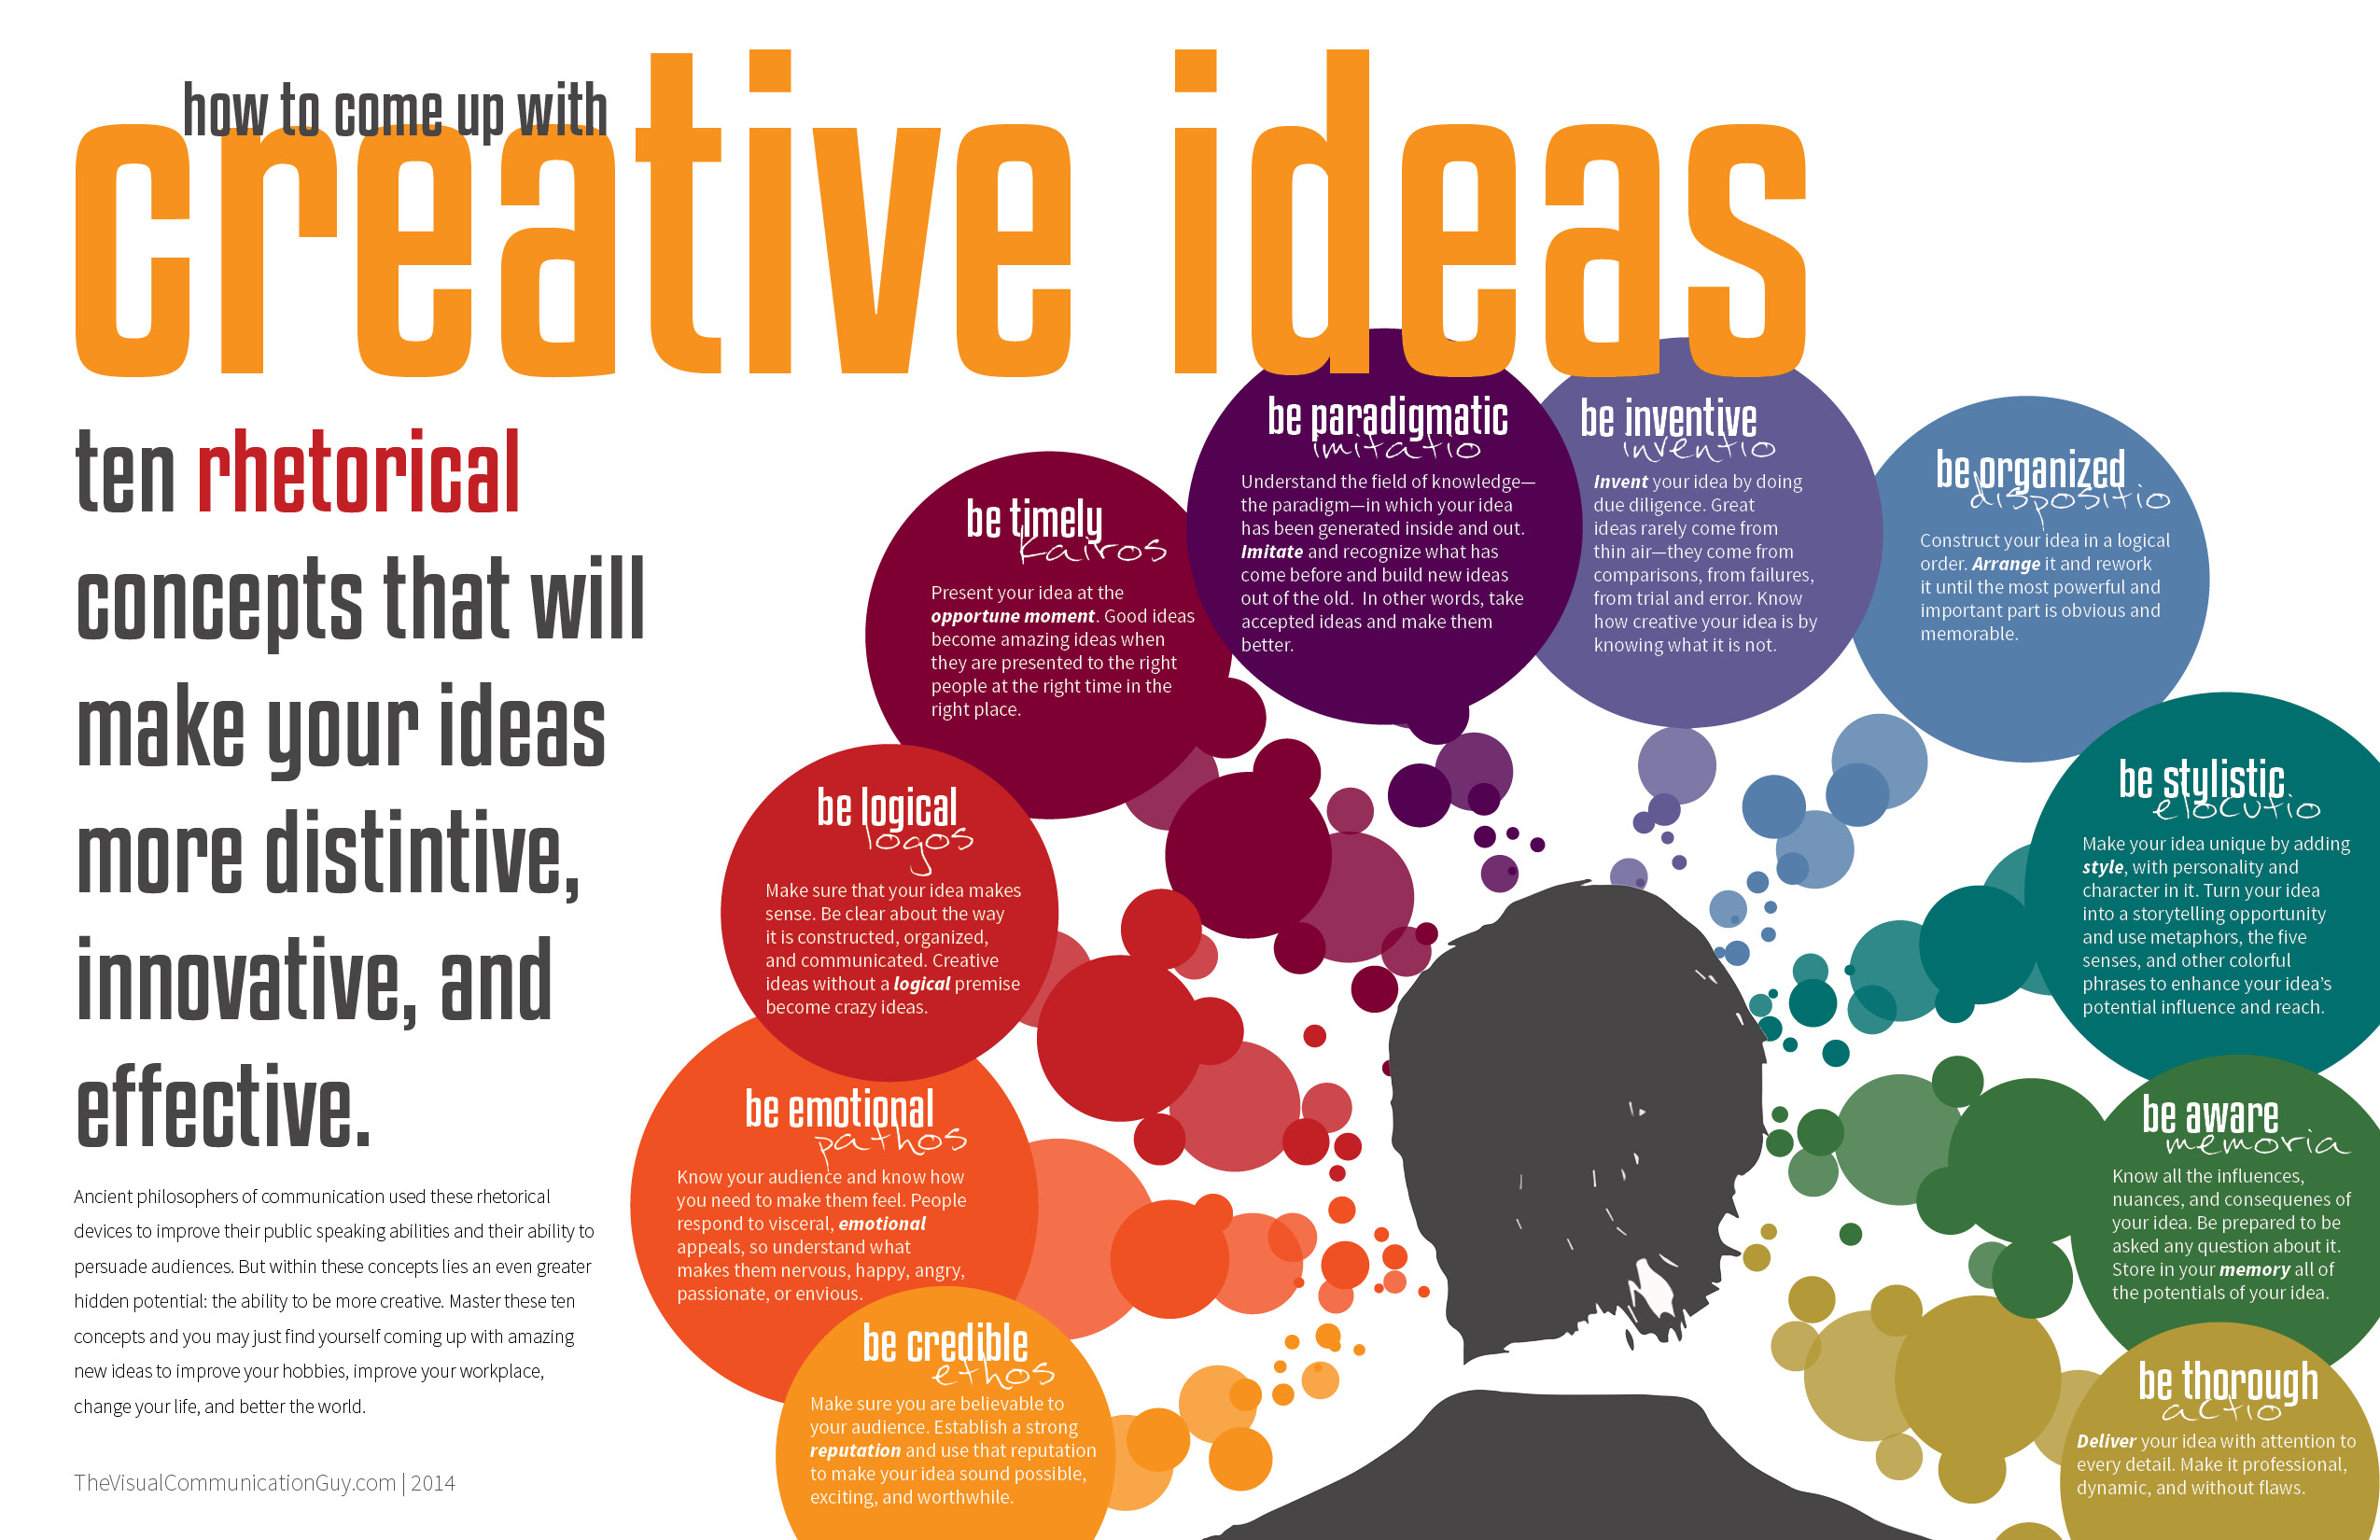 How to Come Up with Creative Ideas (infographic)